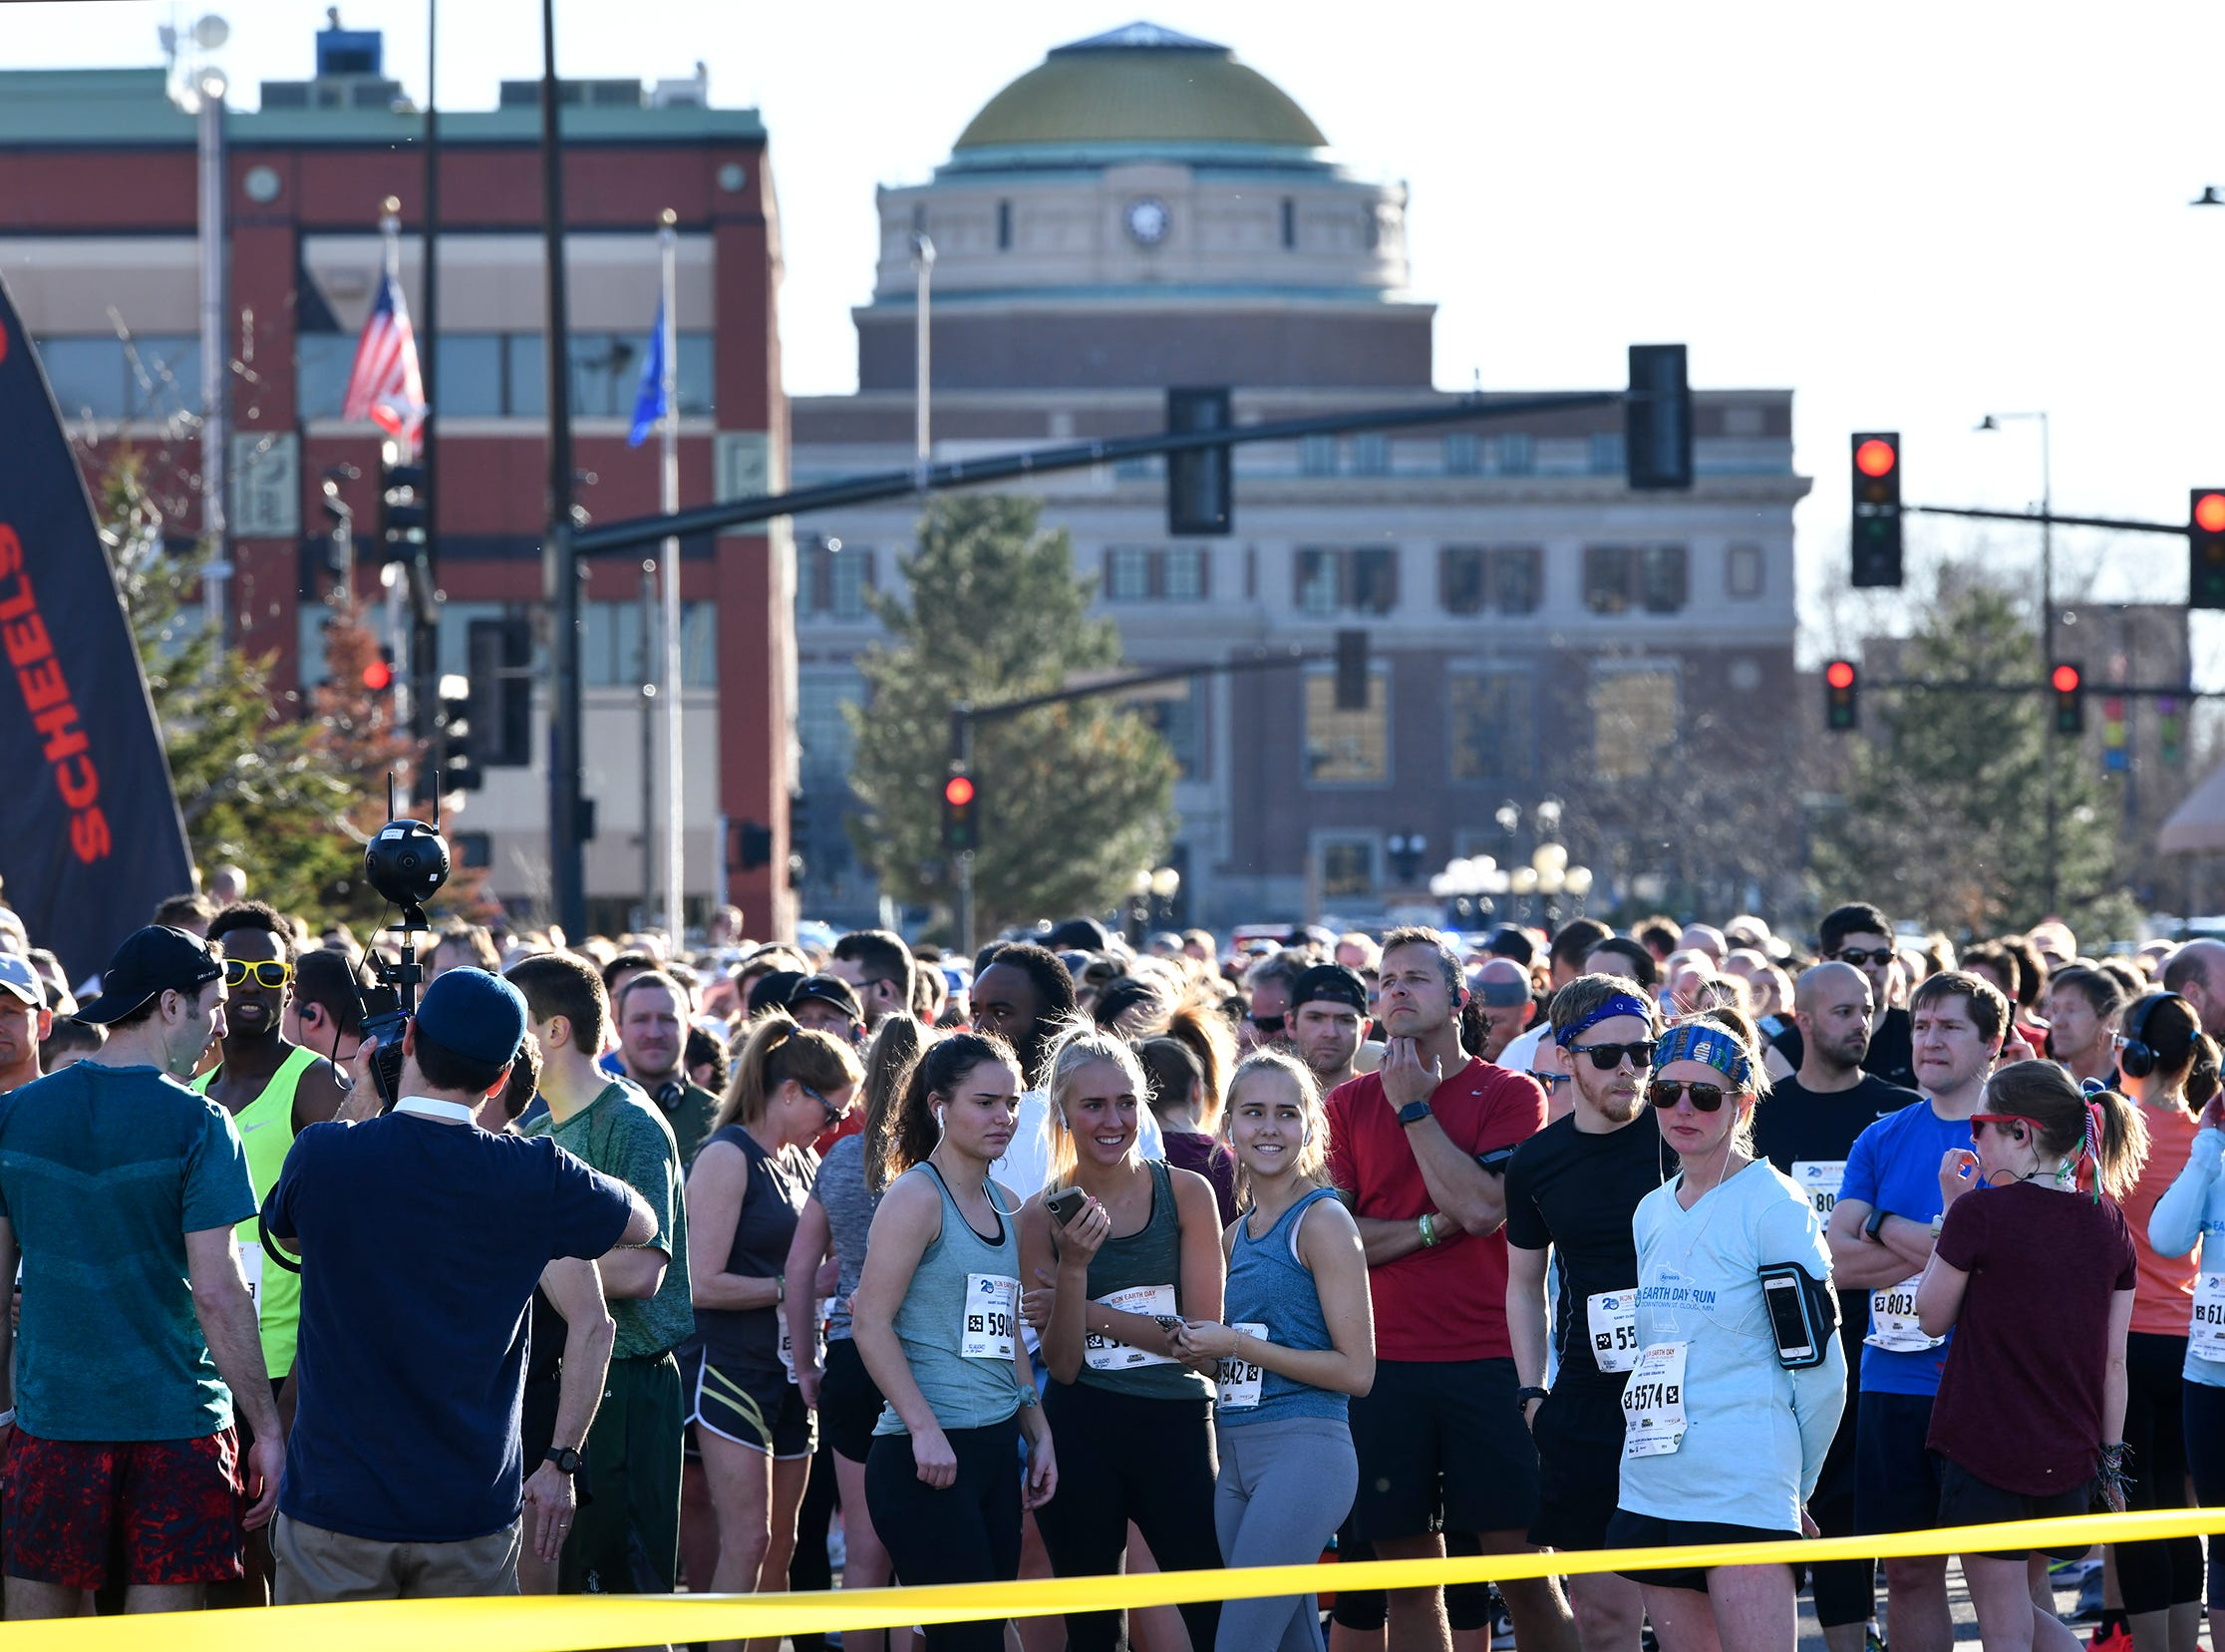 Runners gather for the start of the St. Cloud Subaru 5K run/walk Friday in downtown St. Cloud.